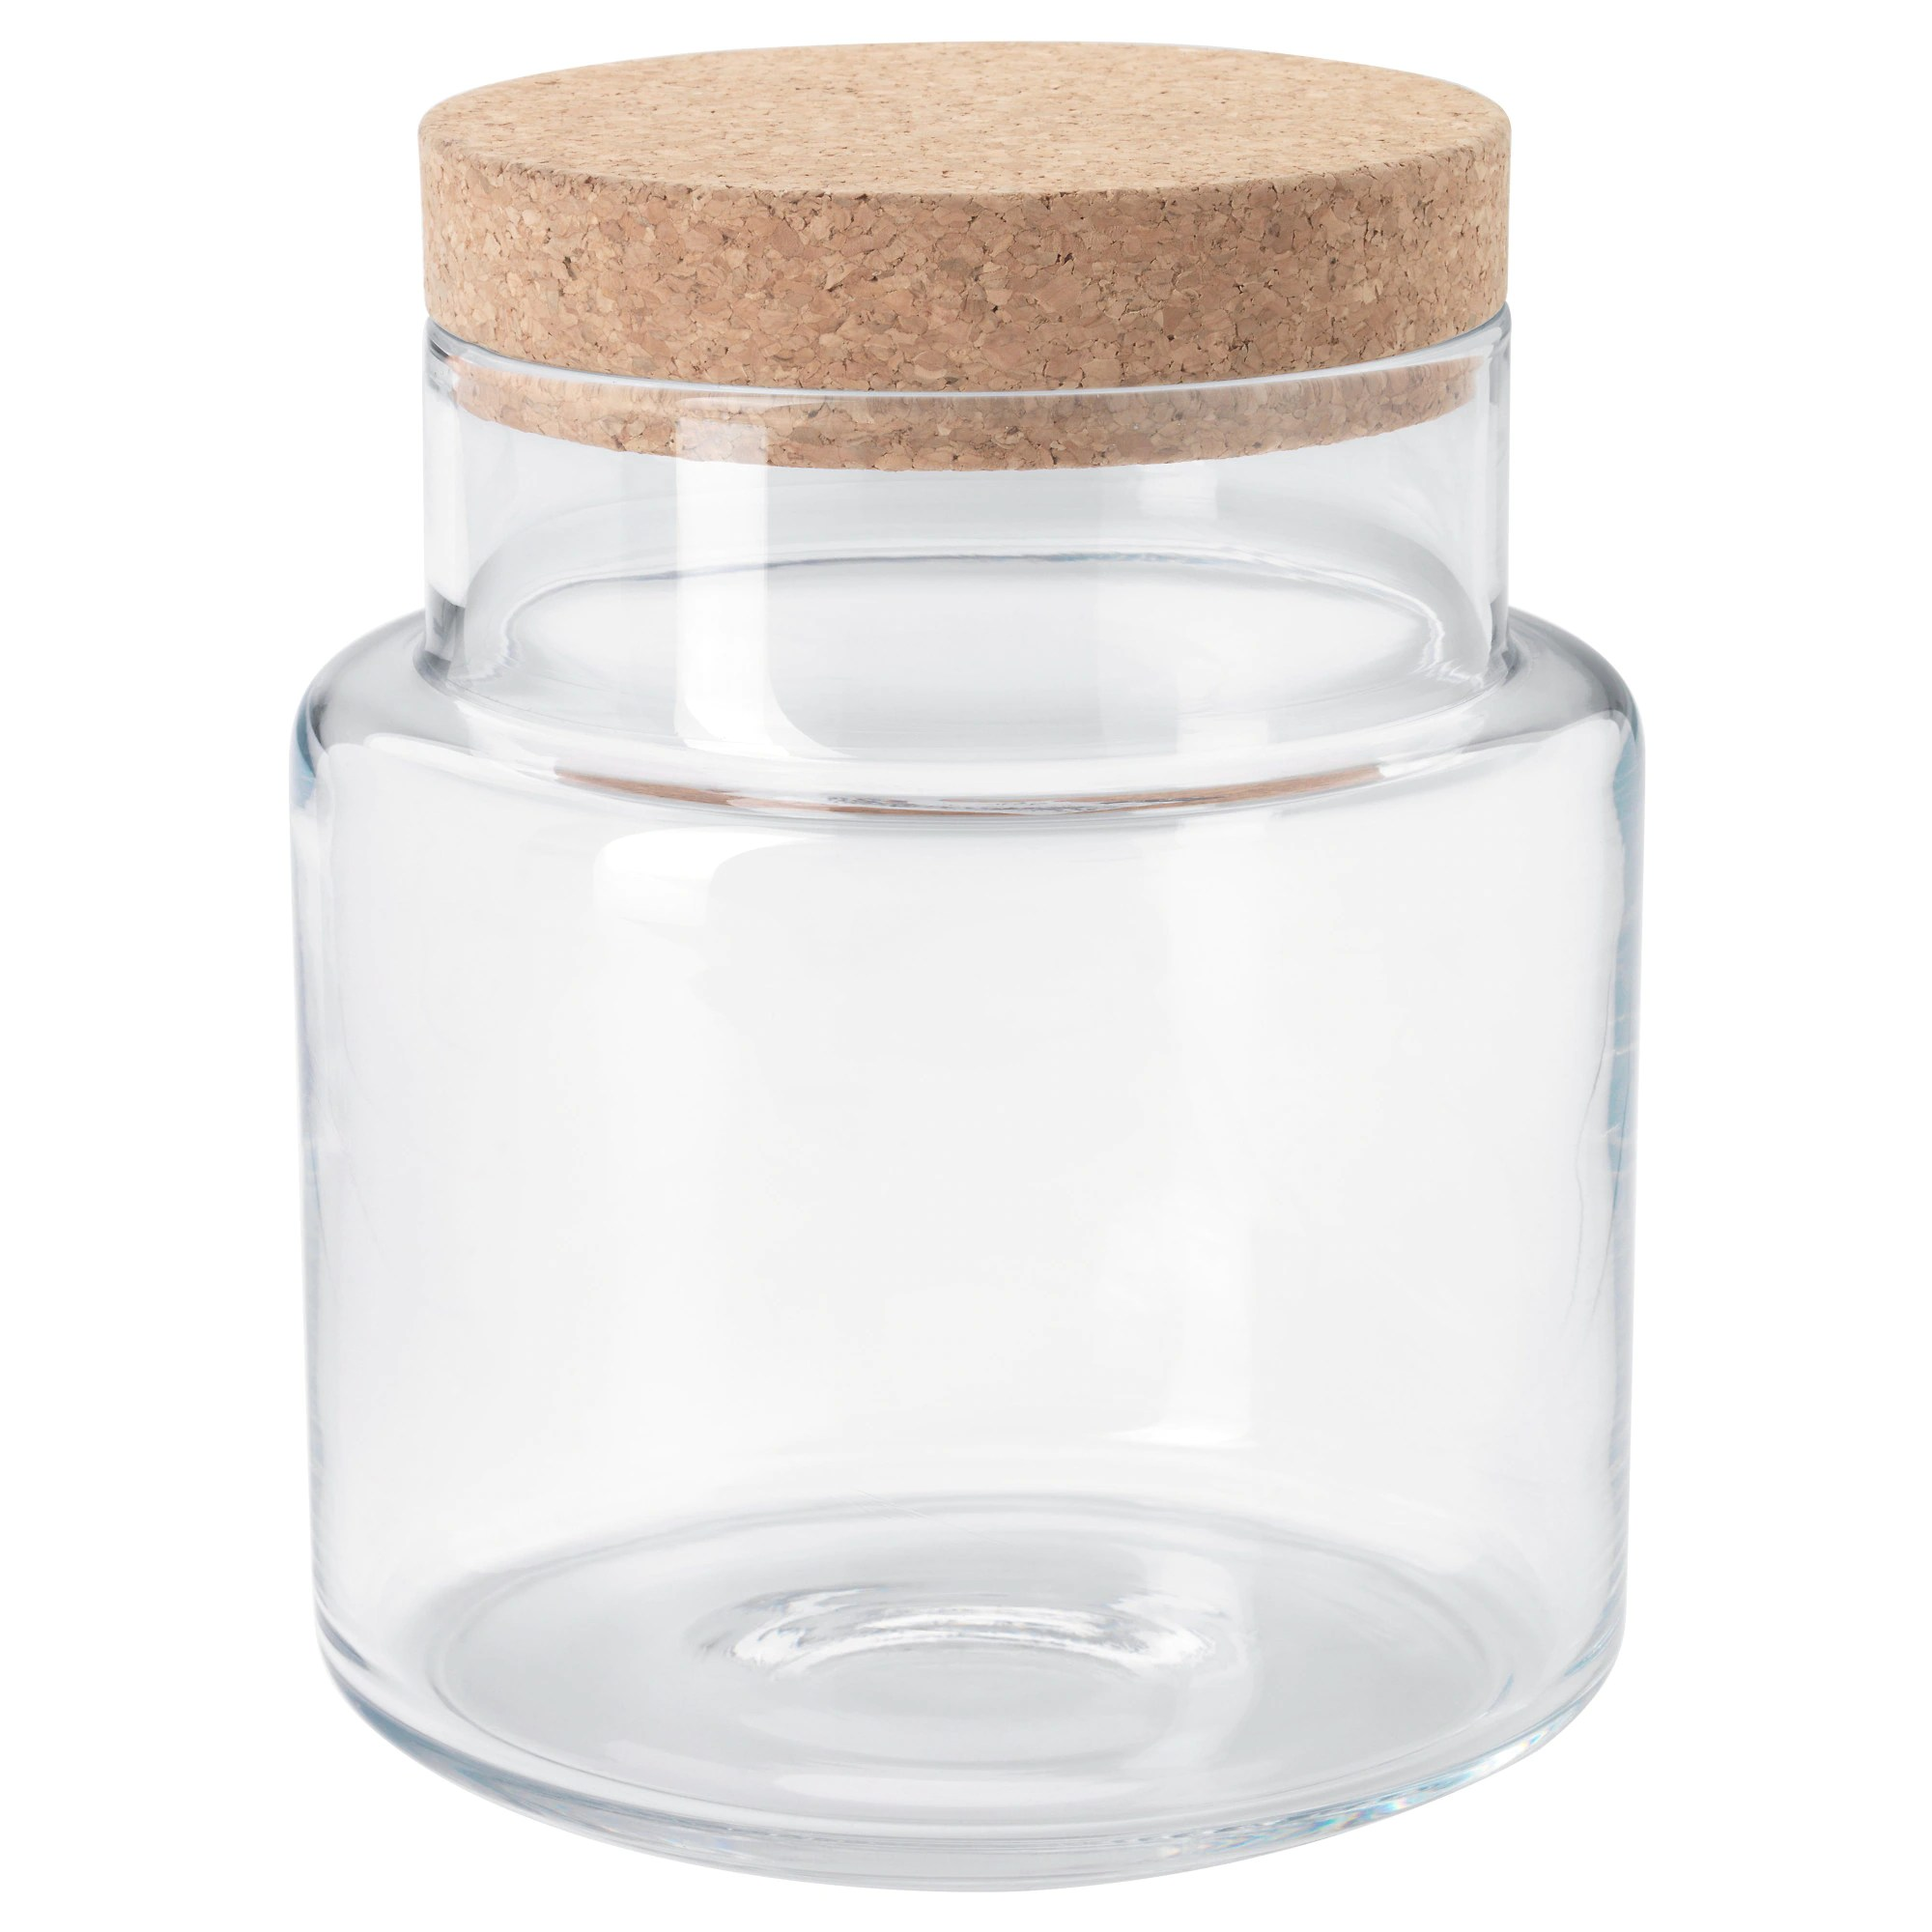 Unique Cookie Jars Sinnerlig Jar With Lid Clear Glass Cork